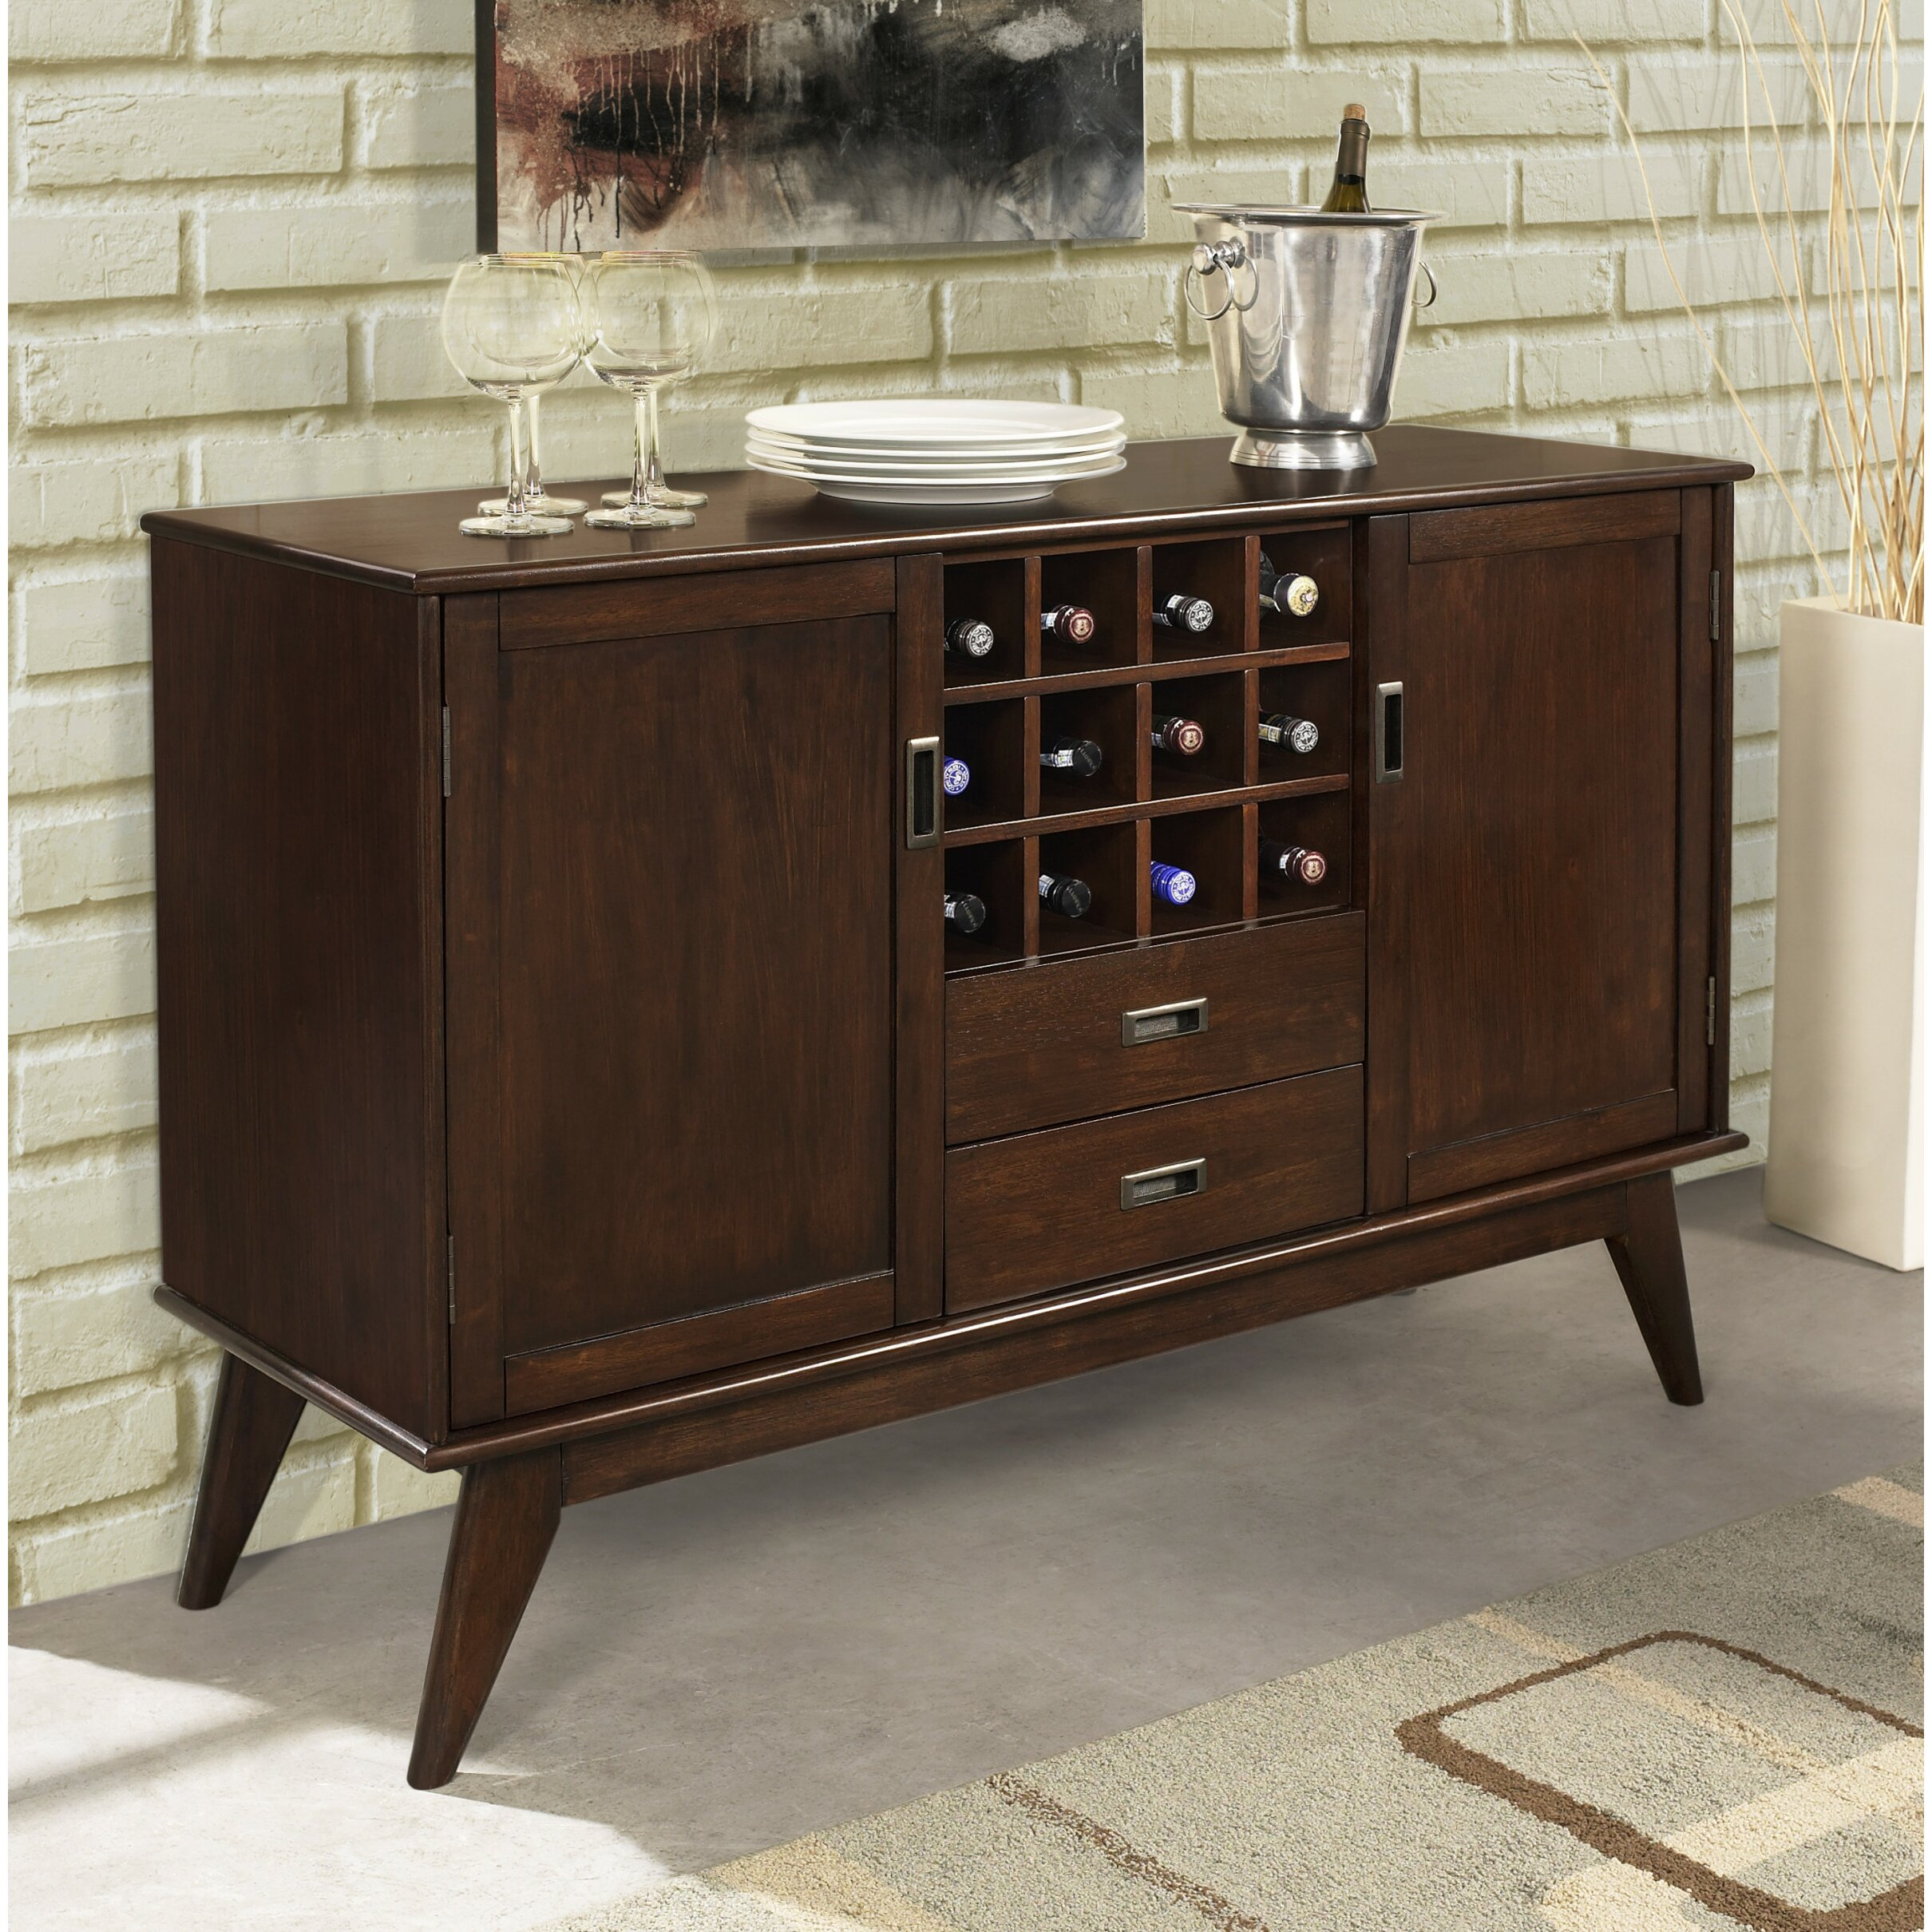 simpli home draper mid century sideboard buffet and wine rack reviews. Black Bedroom Furniture Sets. Home Design Ideas